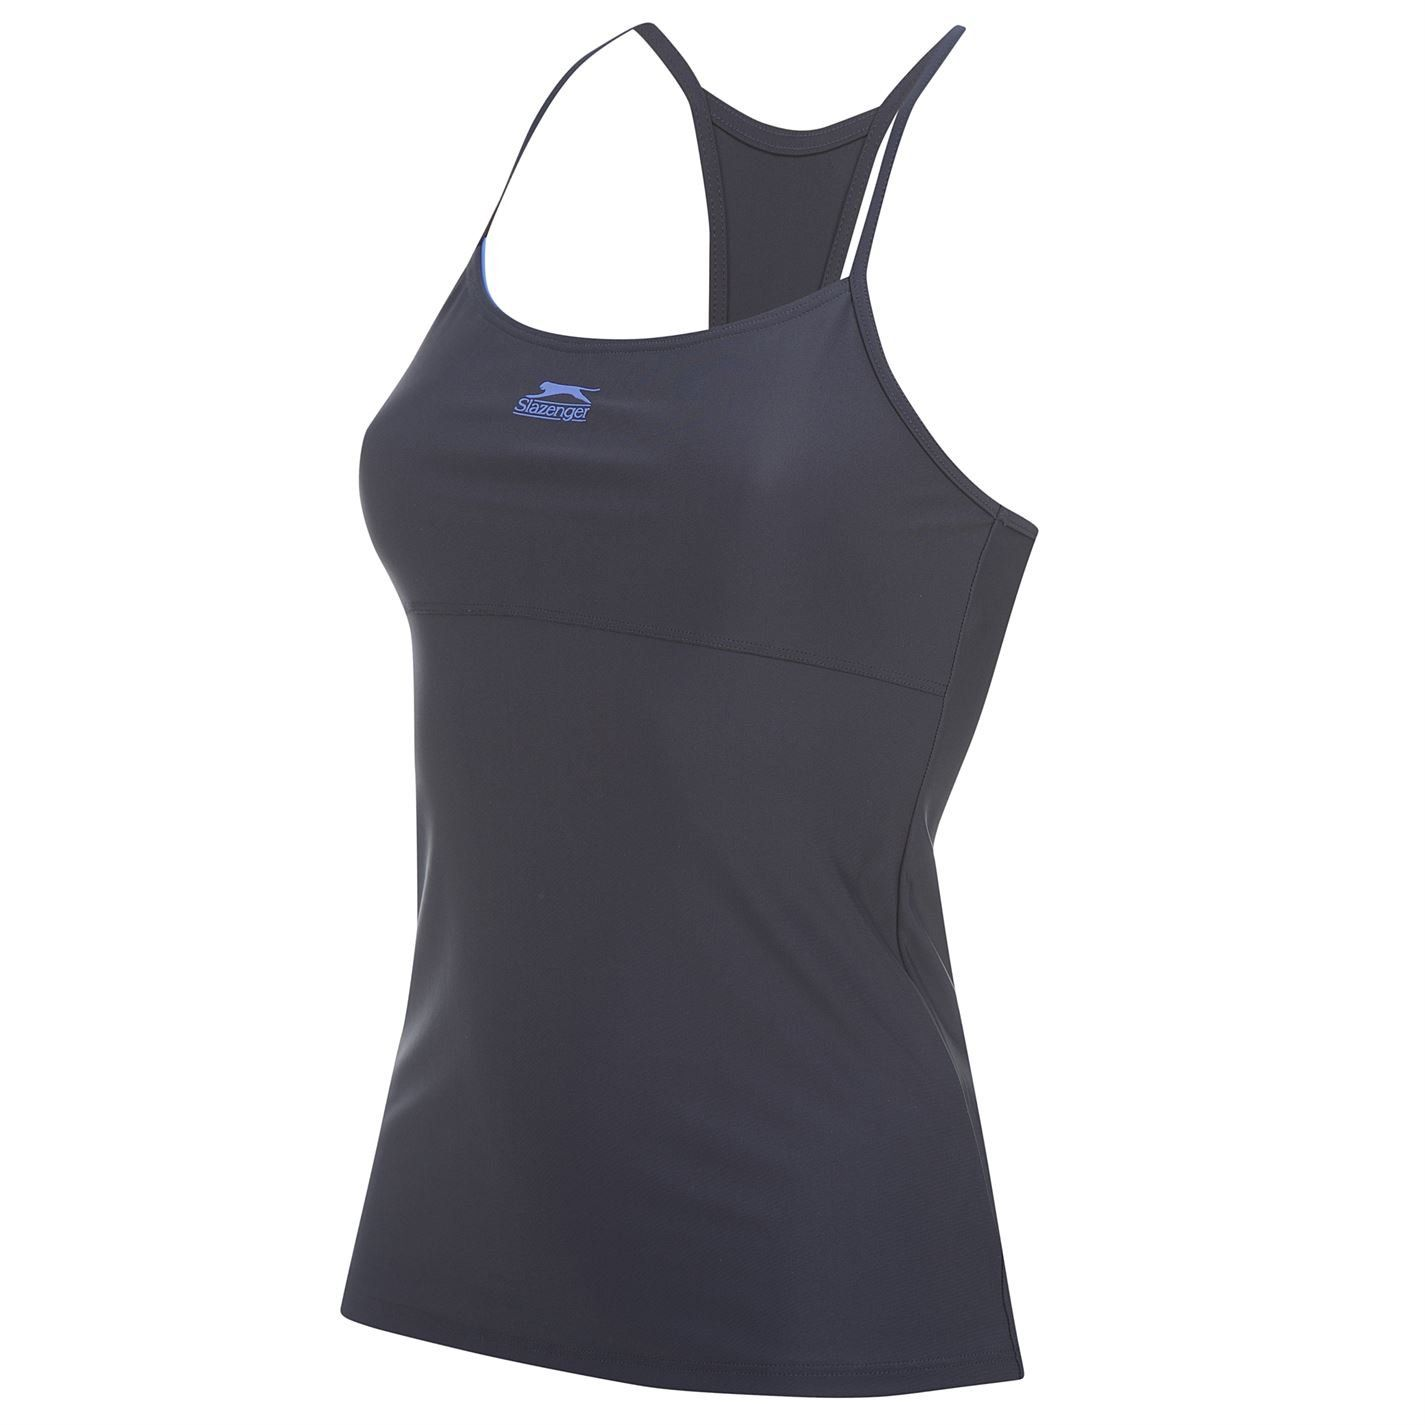 0460d3dc5557e Maternity Styles - dressy maternity swimsuits : Slazenger Womens Tankini  Set Ladies Full Length Top Racer Back Shorts Style Navy 14 L *** Have a  look at the ...